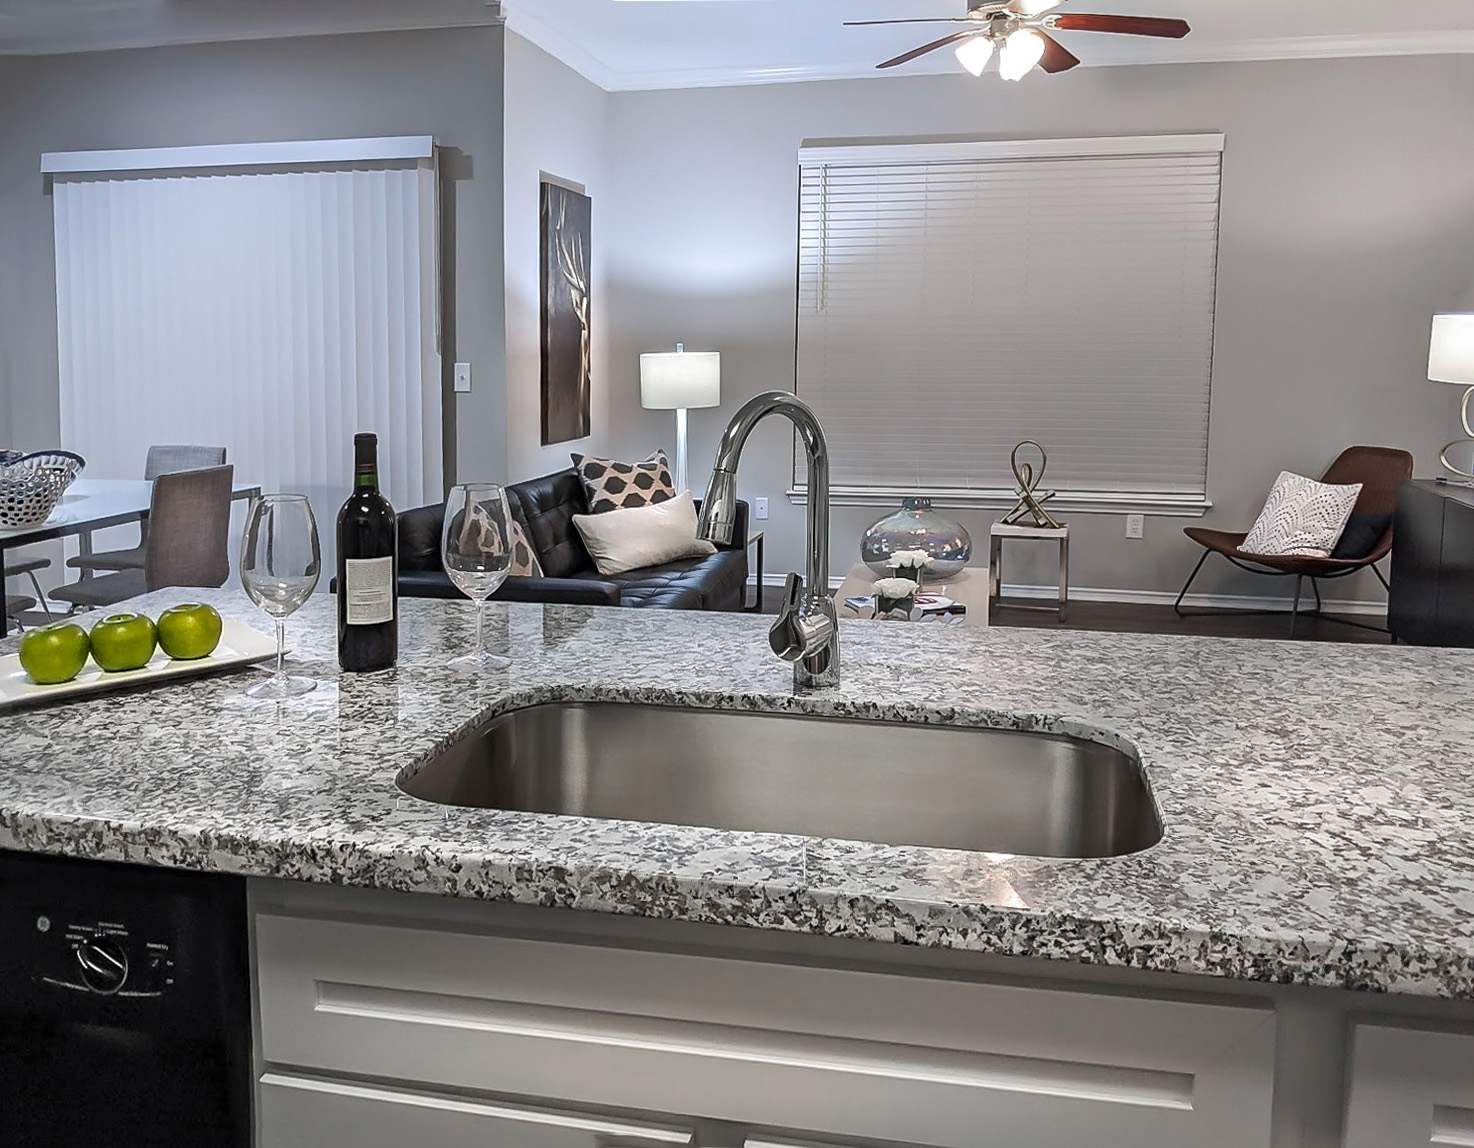 Large Sinks at The Link, a Community of Luxury Apartments in Houston, Texas